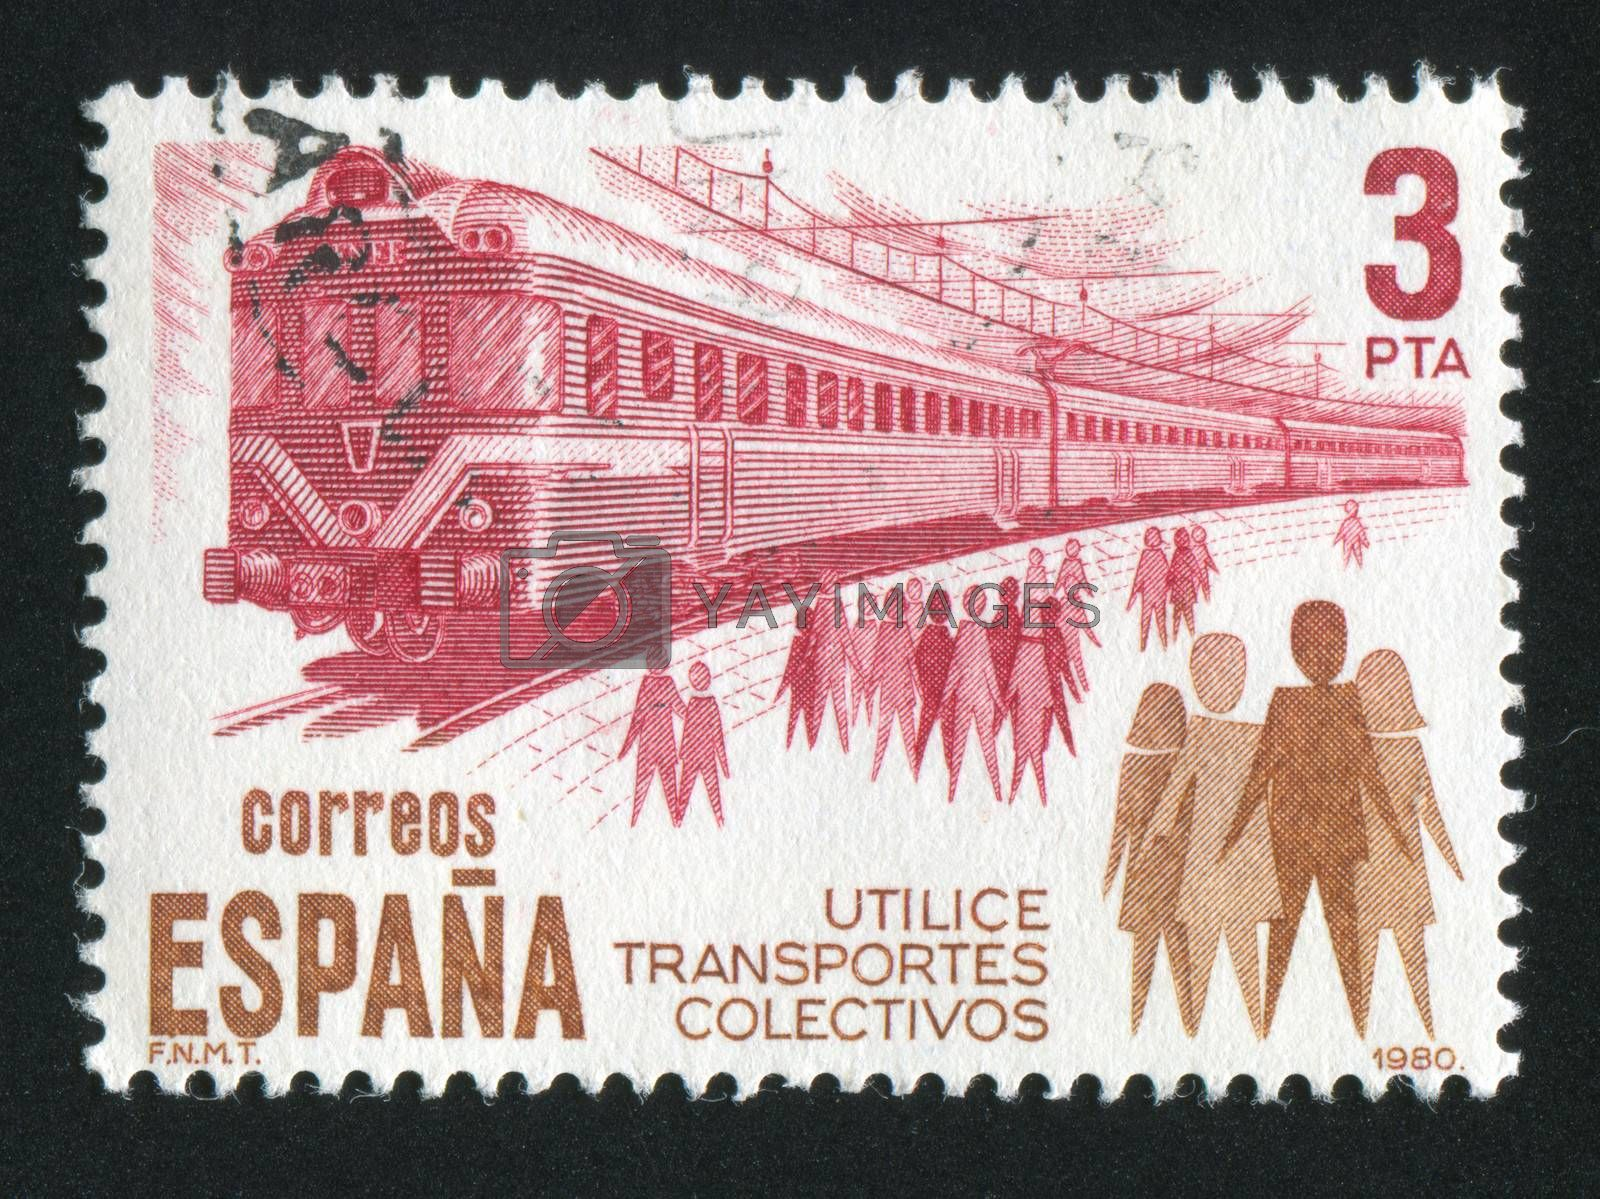 SPAIN - CIRCA 1980: stamp printed by Spain, shows Train and People, circa 1980